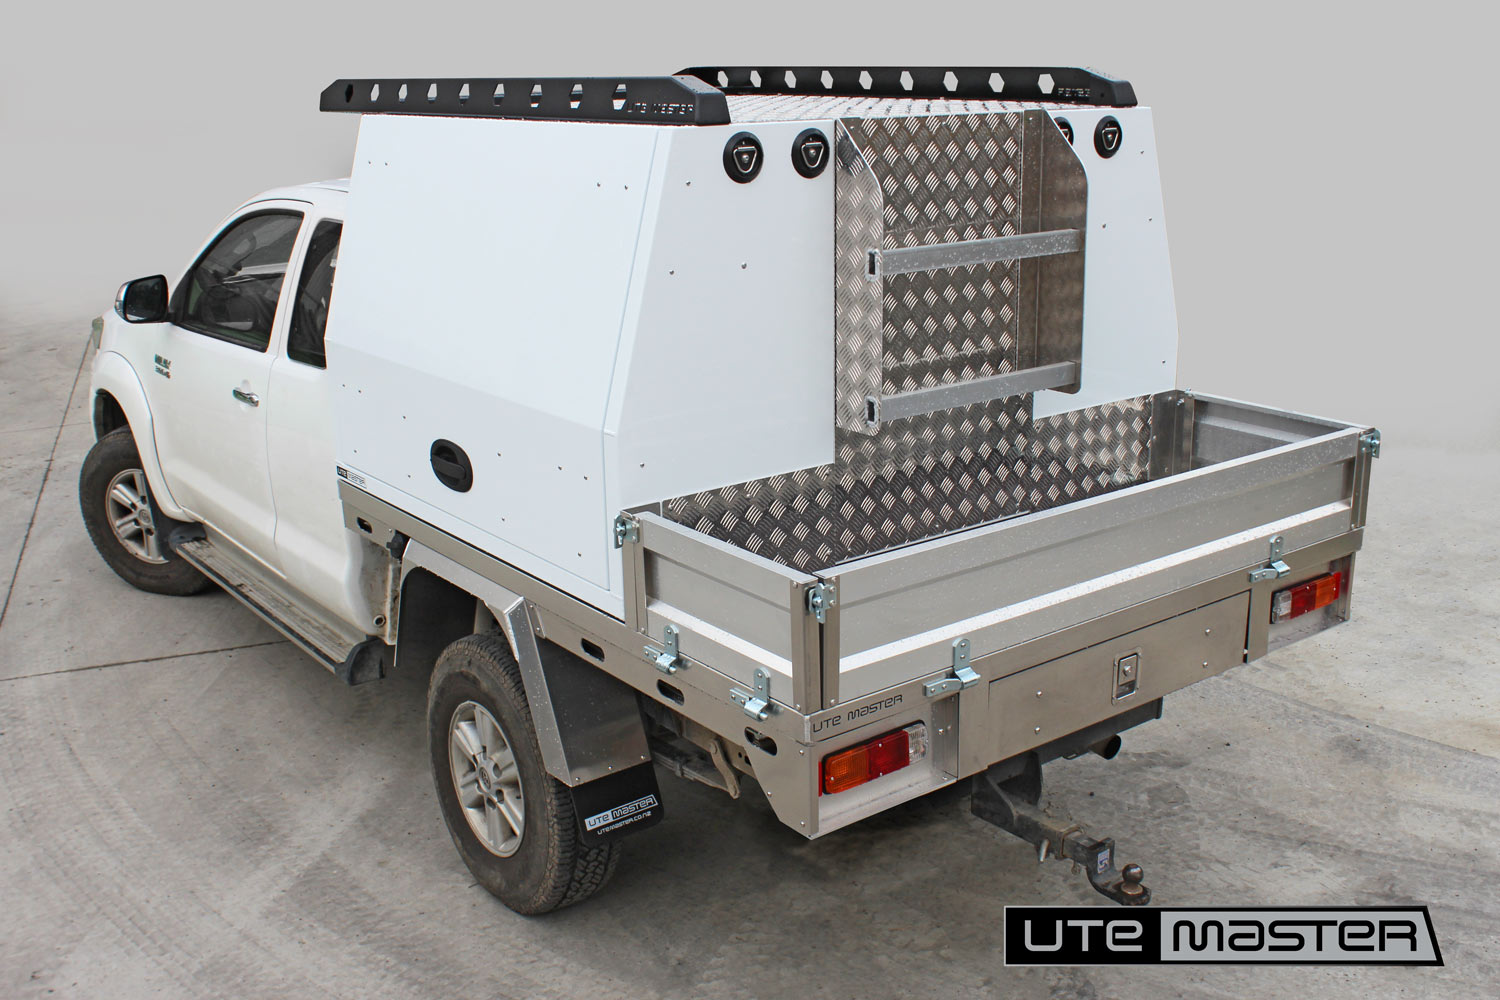 Utemaster Deck and Service Body toolbox service equipment water hydro storage Commercial Ute Mechanic Fitout